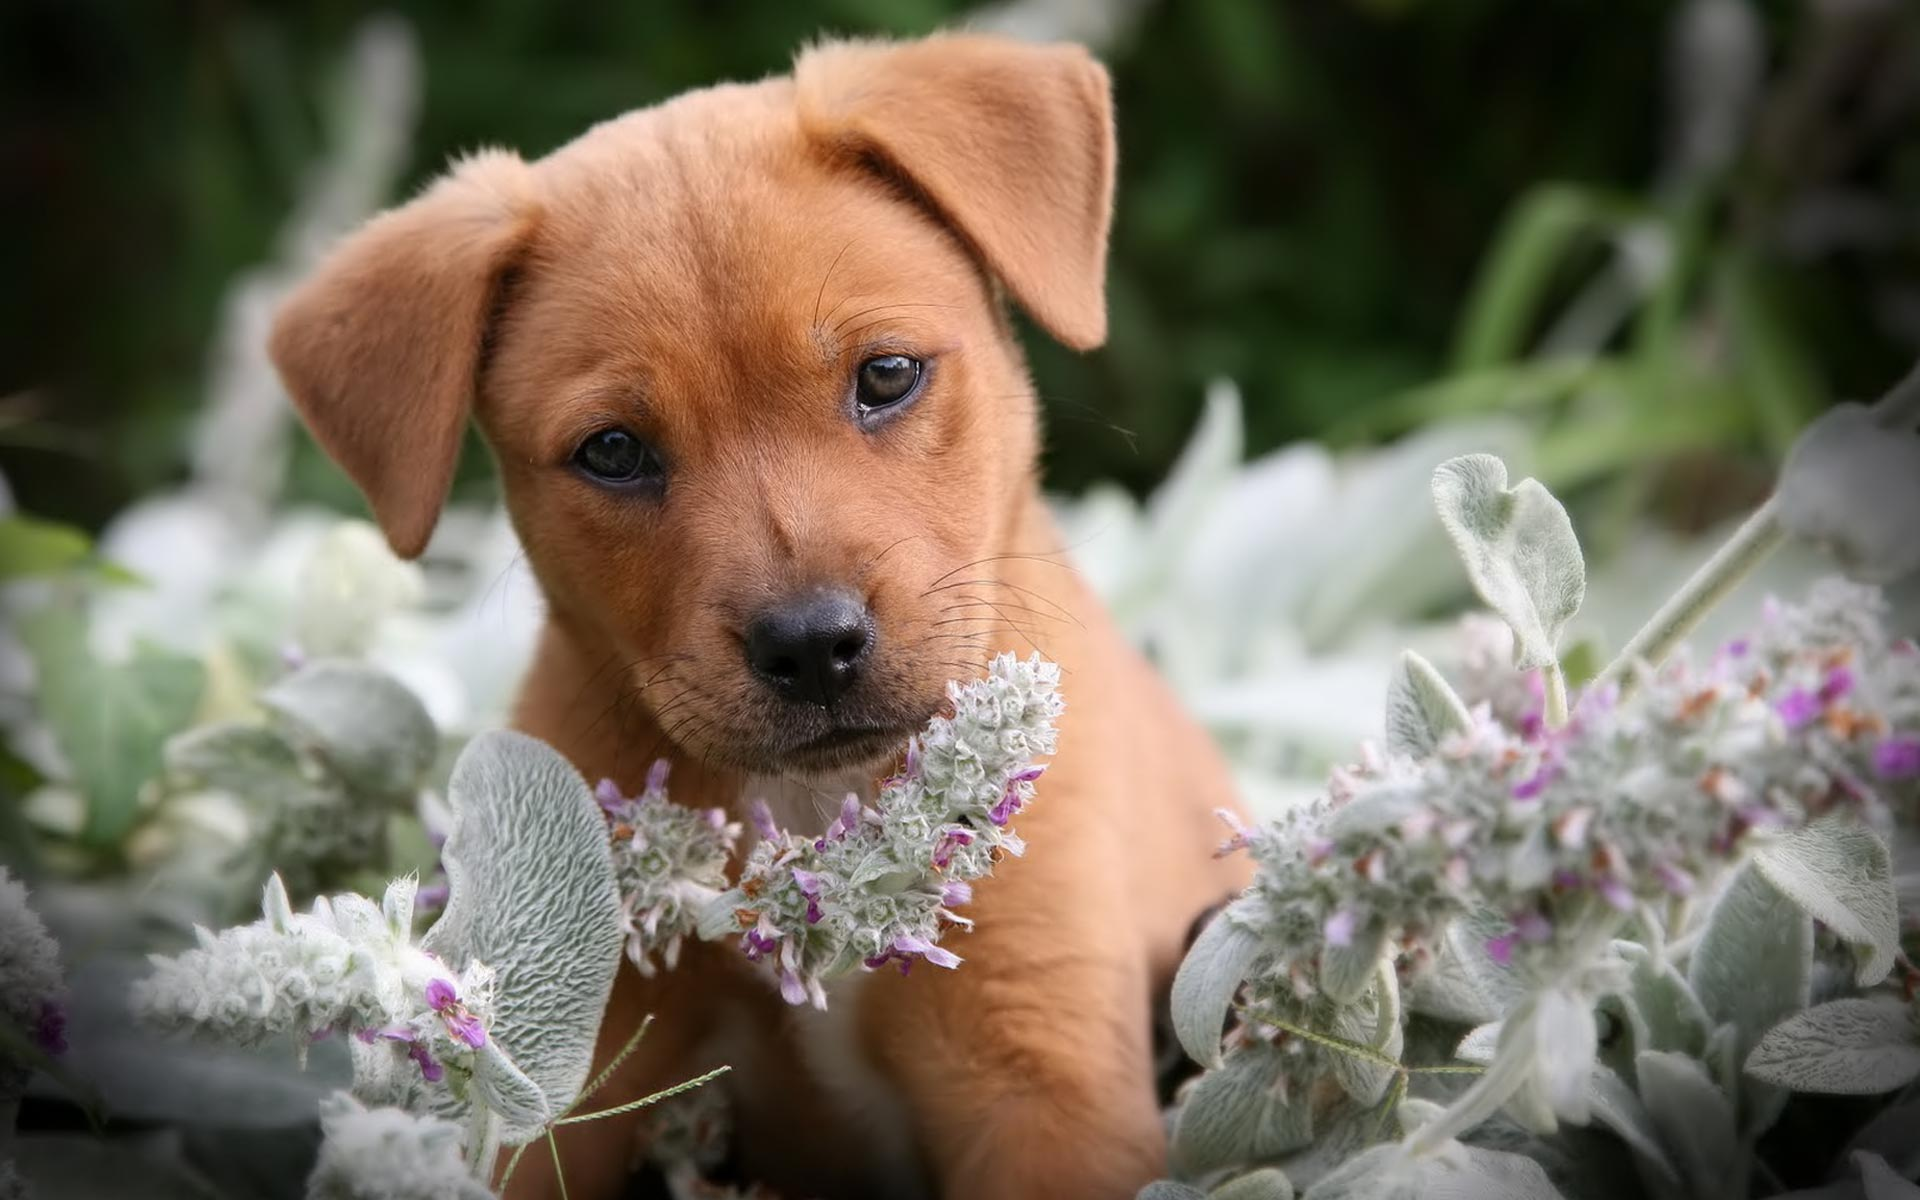 Funny Puppy animal hd Wallpaper High Quality Wallpapers 1920x1200